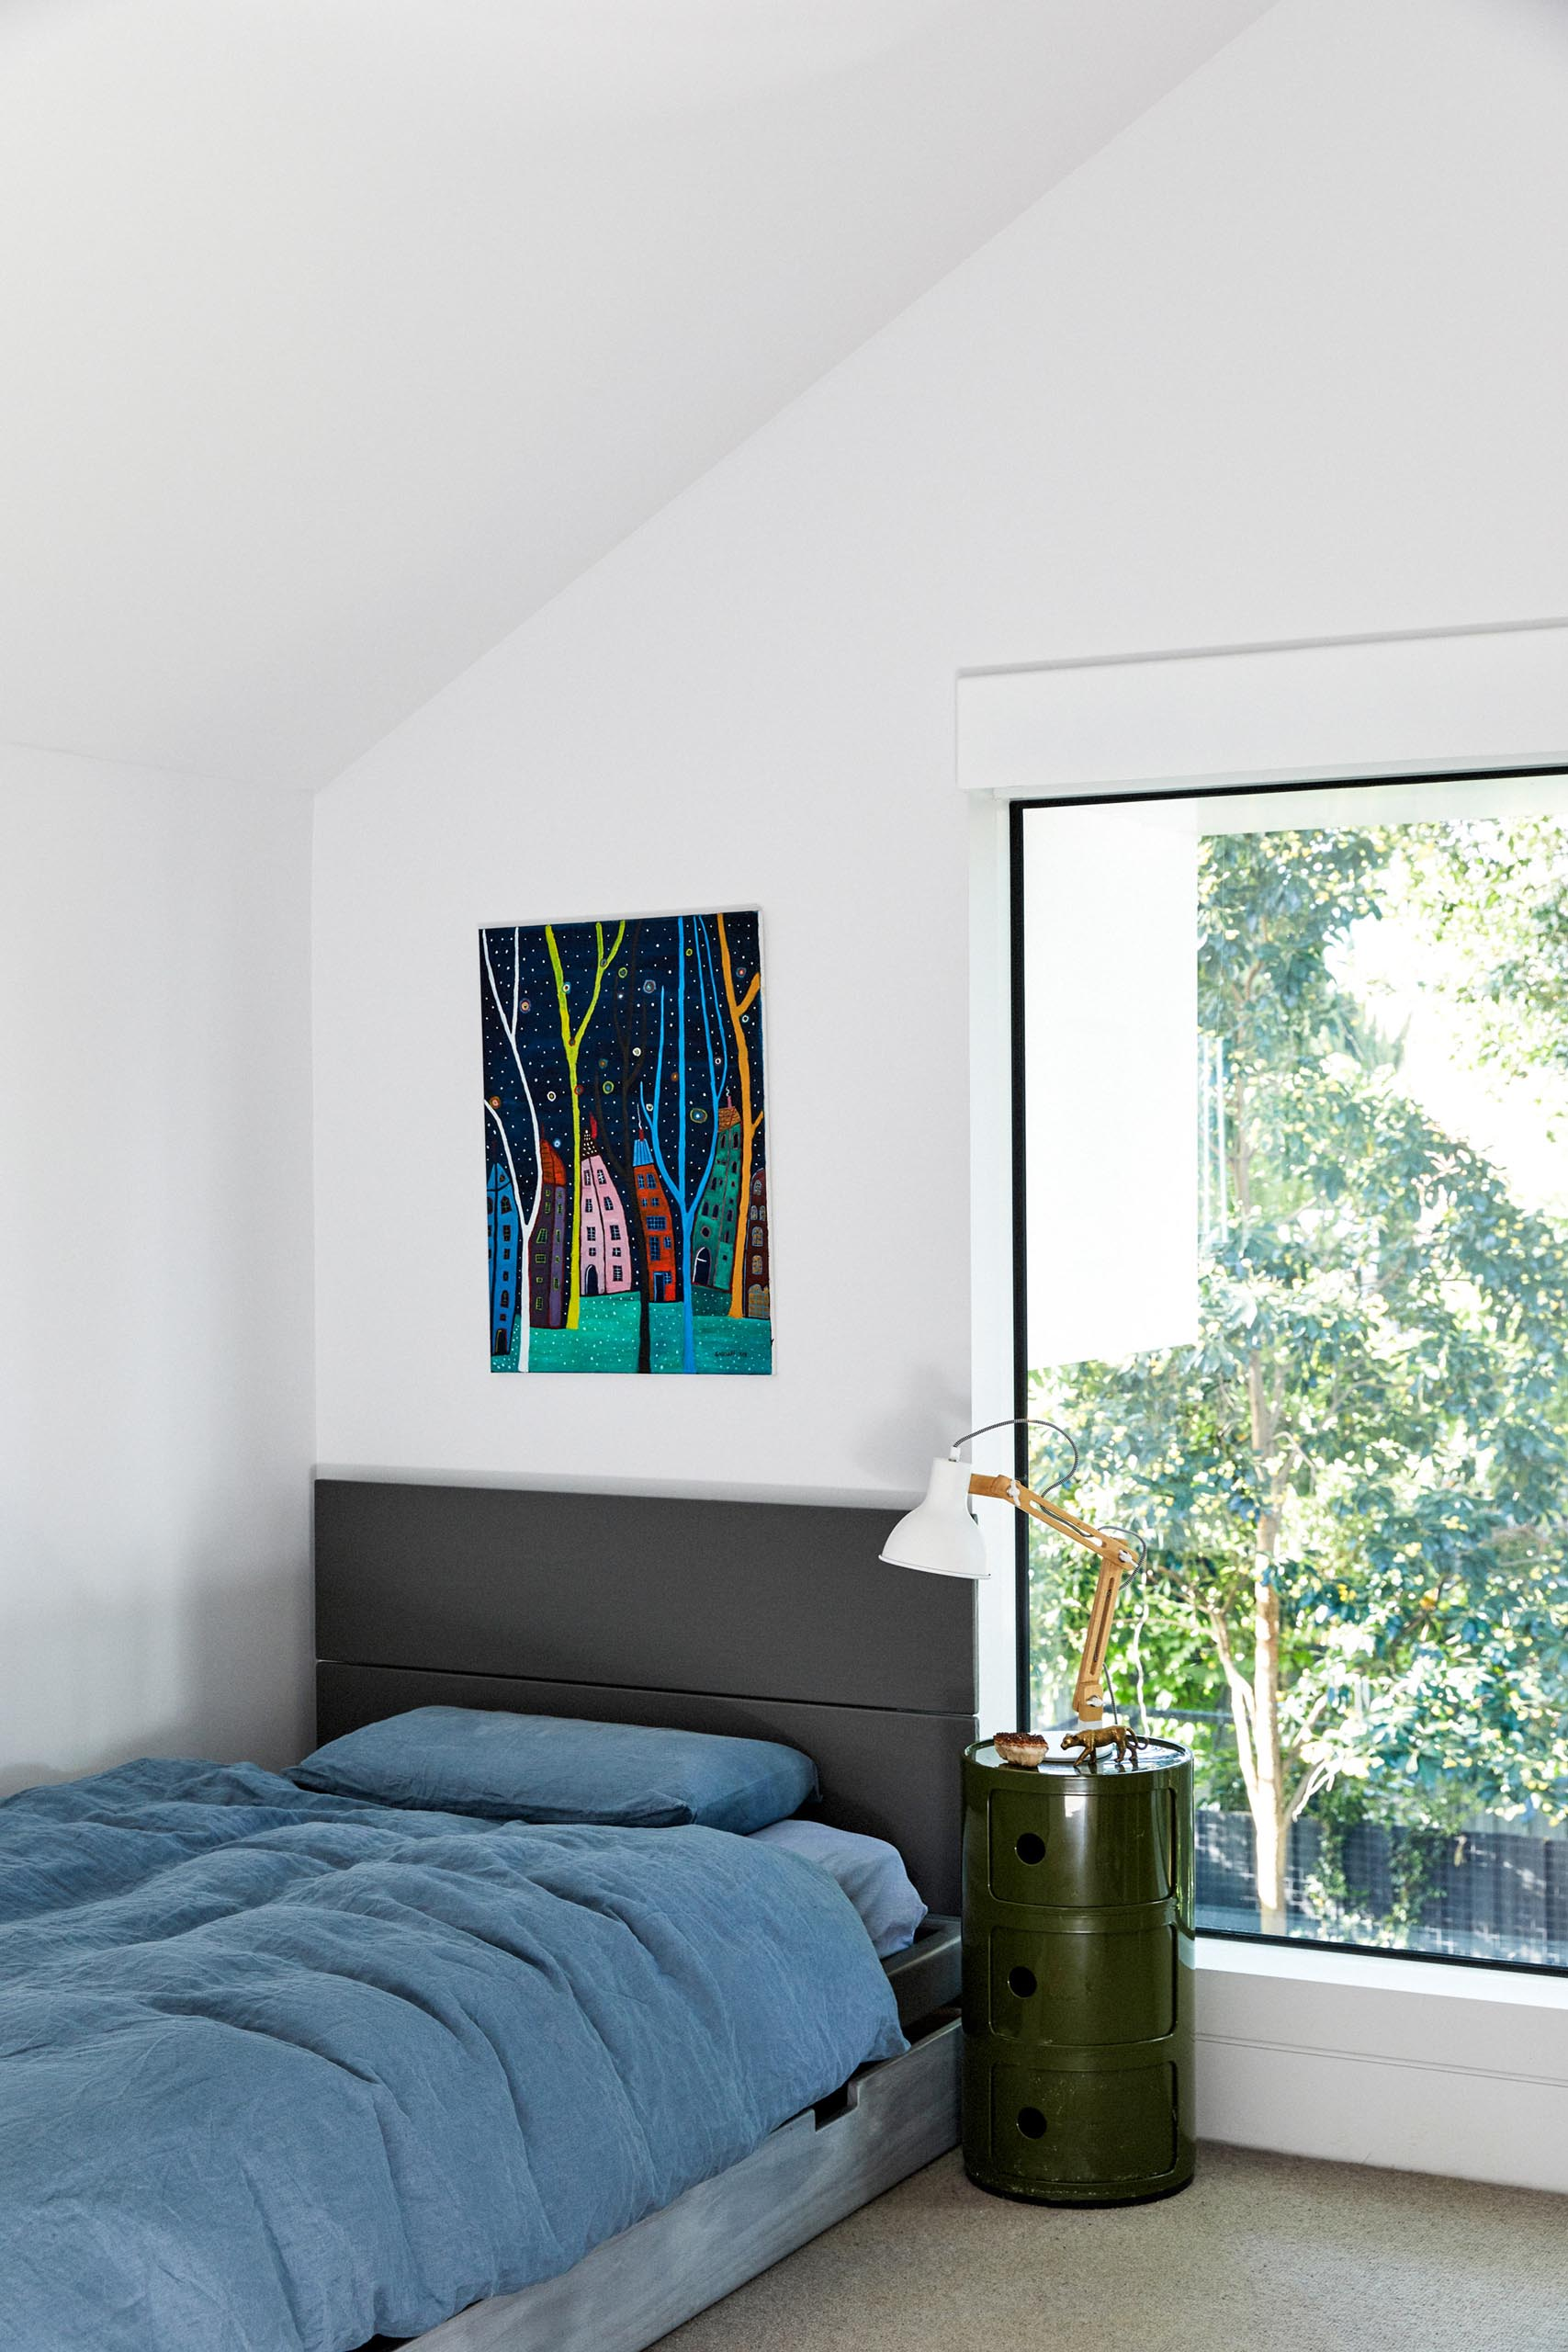 In this modern bedroom, bright white walls create a clean and crisp look, while the artwork adds a touch of color.